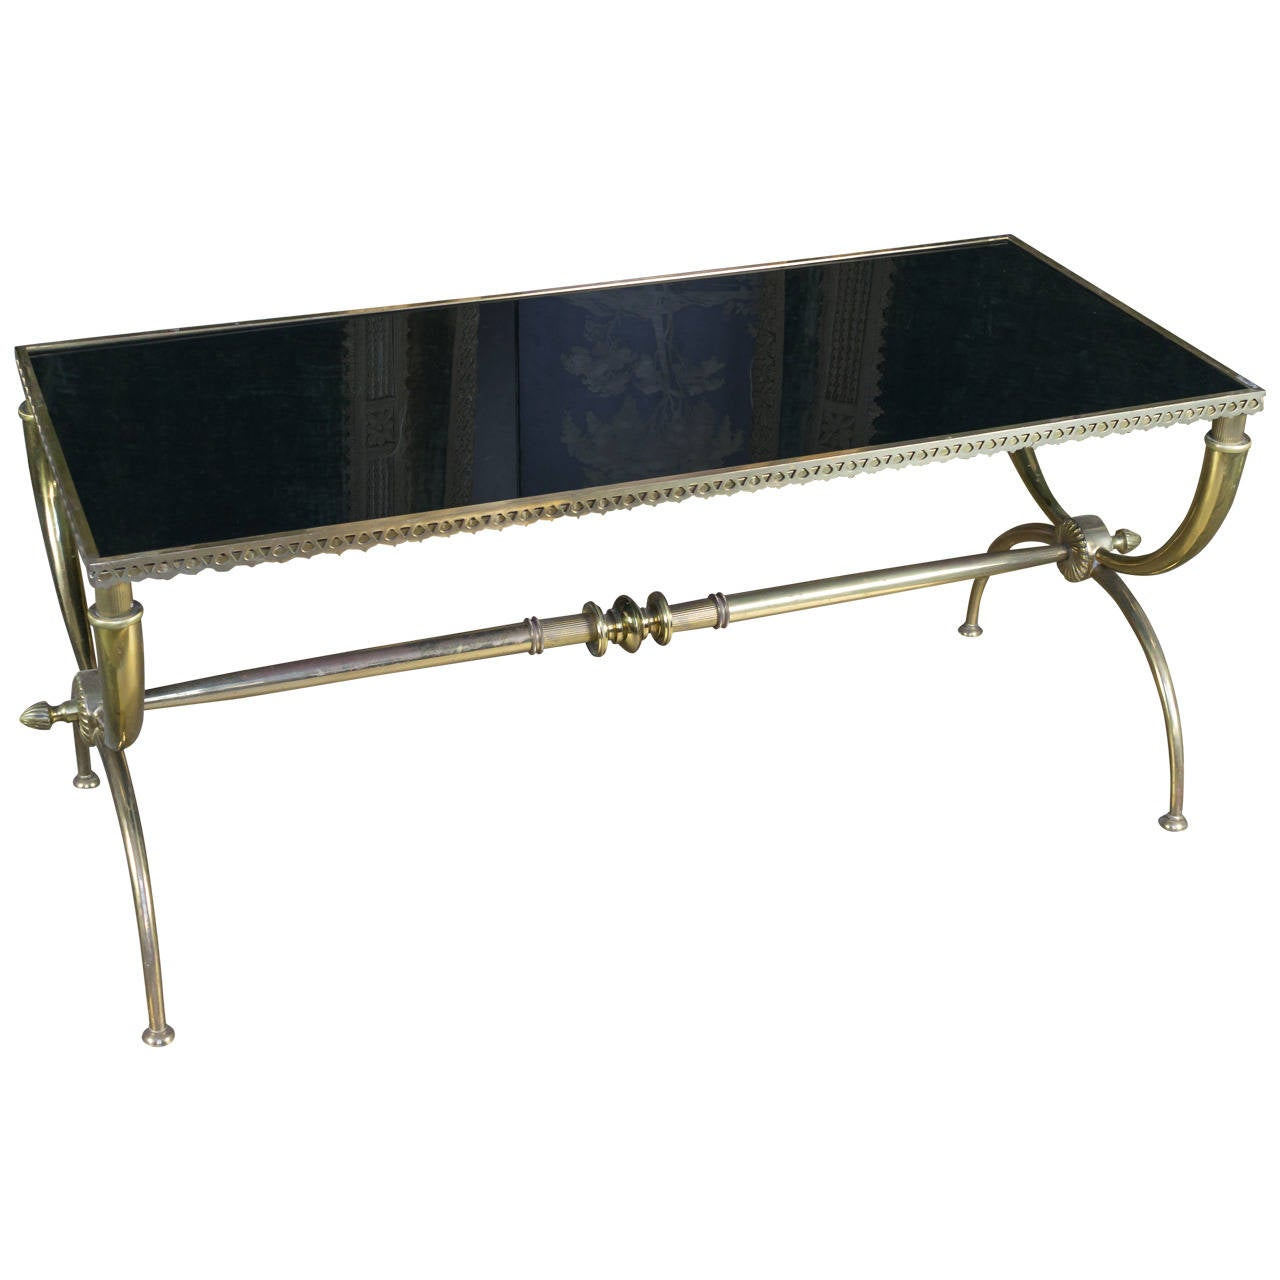 Elegant Brass And Glass Coffee Table: Elegant French Brass Coffee Table With Black Glass At 1stdibs